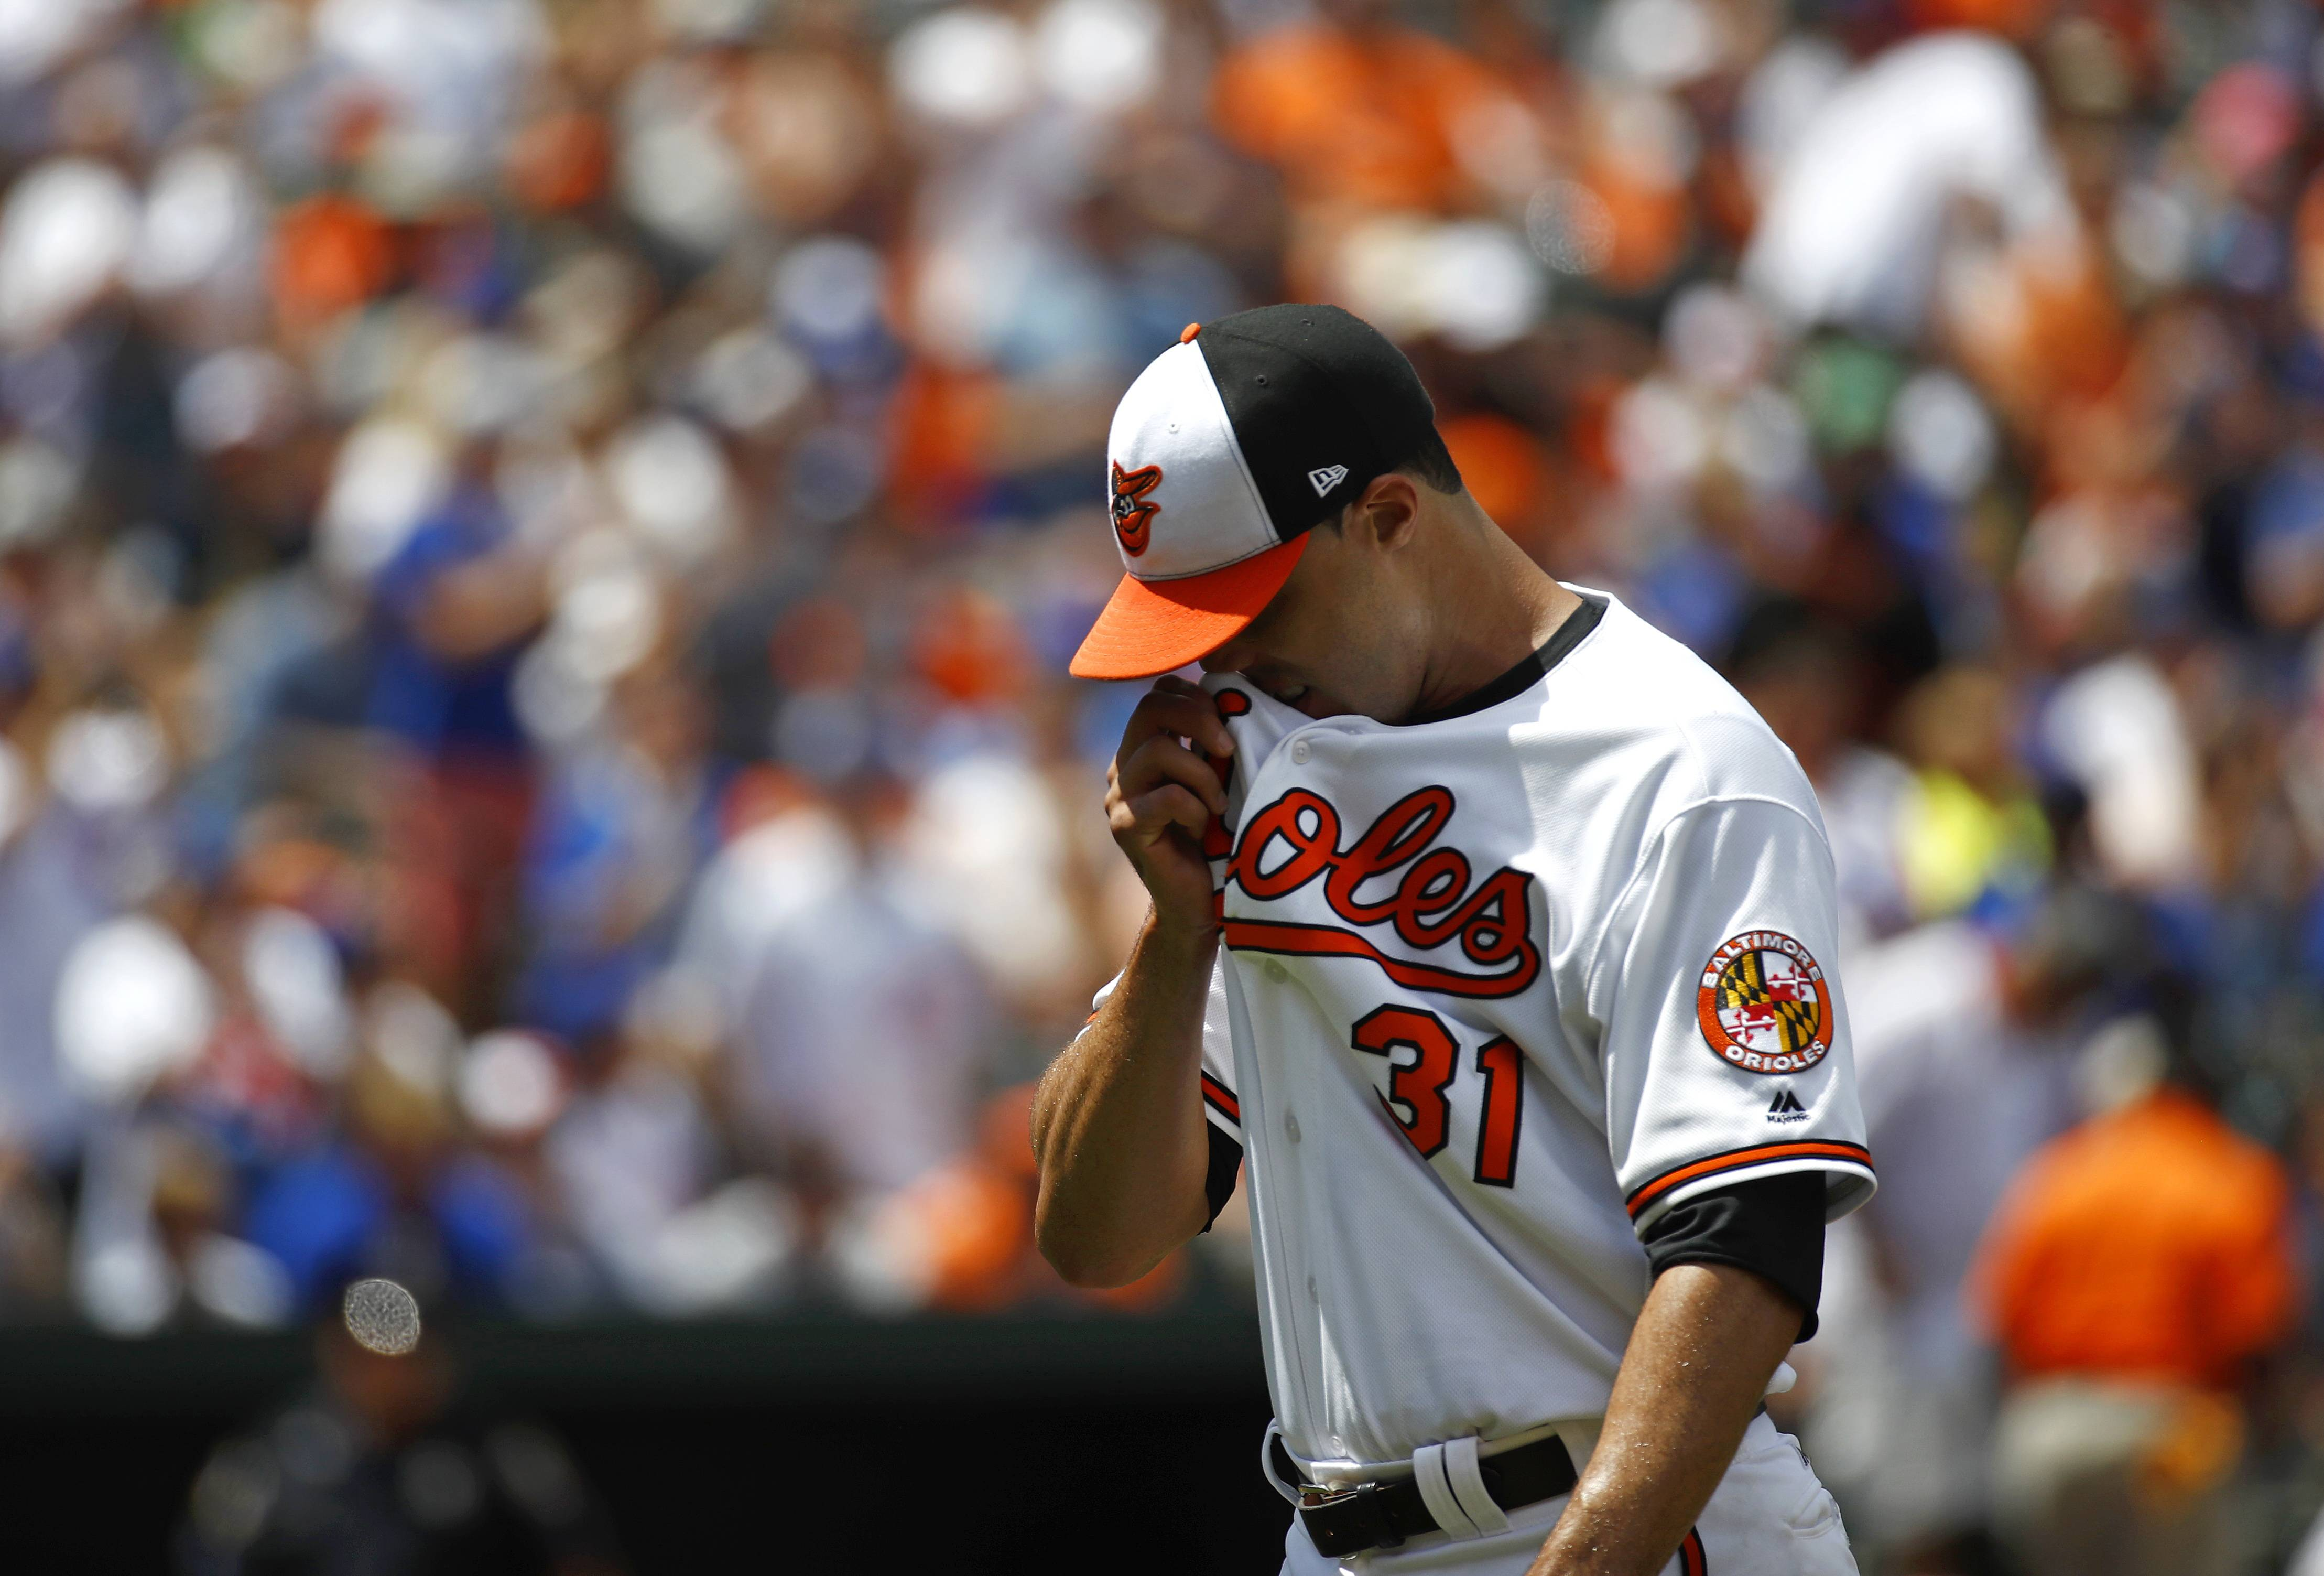 Baltimore Orioles starting pitcher Ubaldo Jimenez wipes his face as he walks off the field after the top of the second inning of a baseball game against the Chicago Cubs in Baltimore, Sunday, July 16, 2017. Chicago scored four runs against Jimenez in the second.